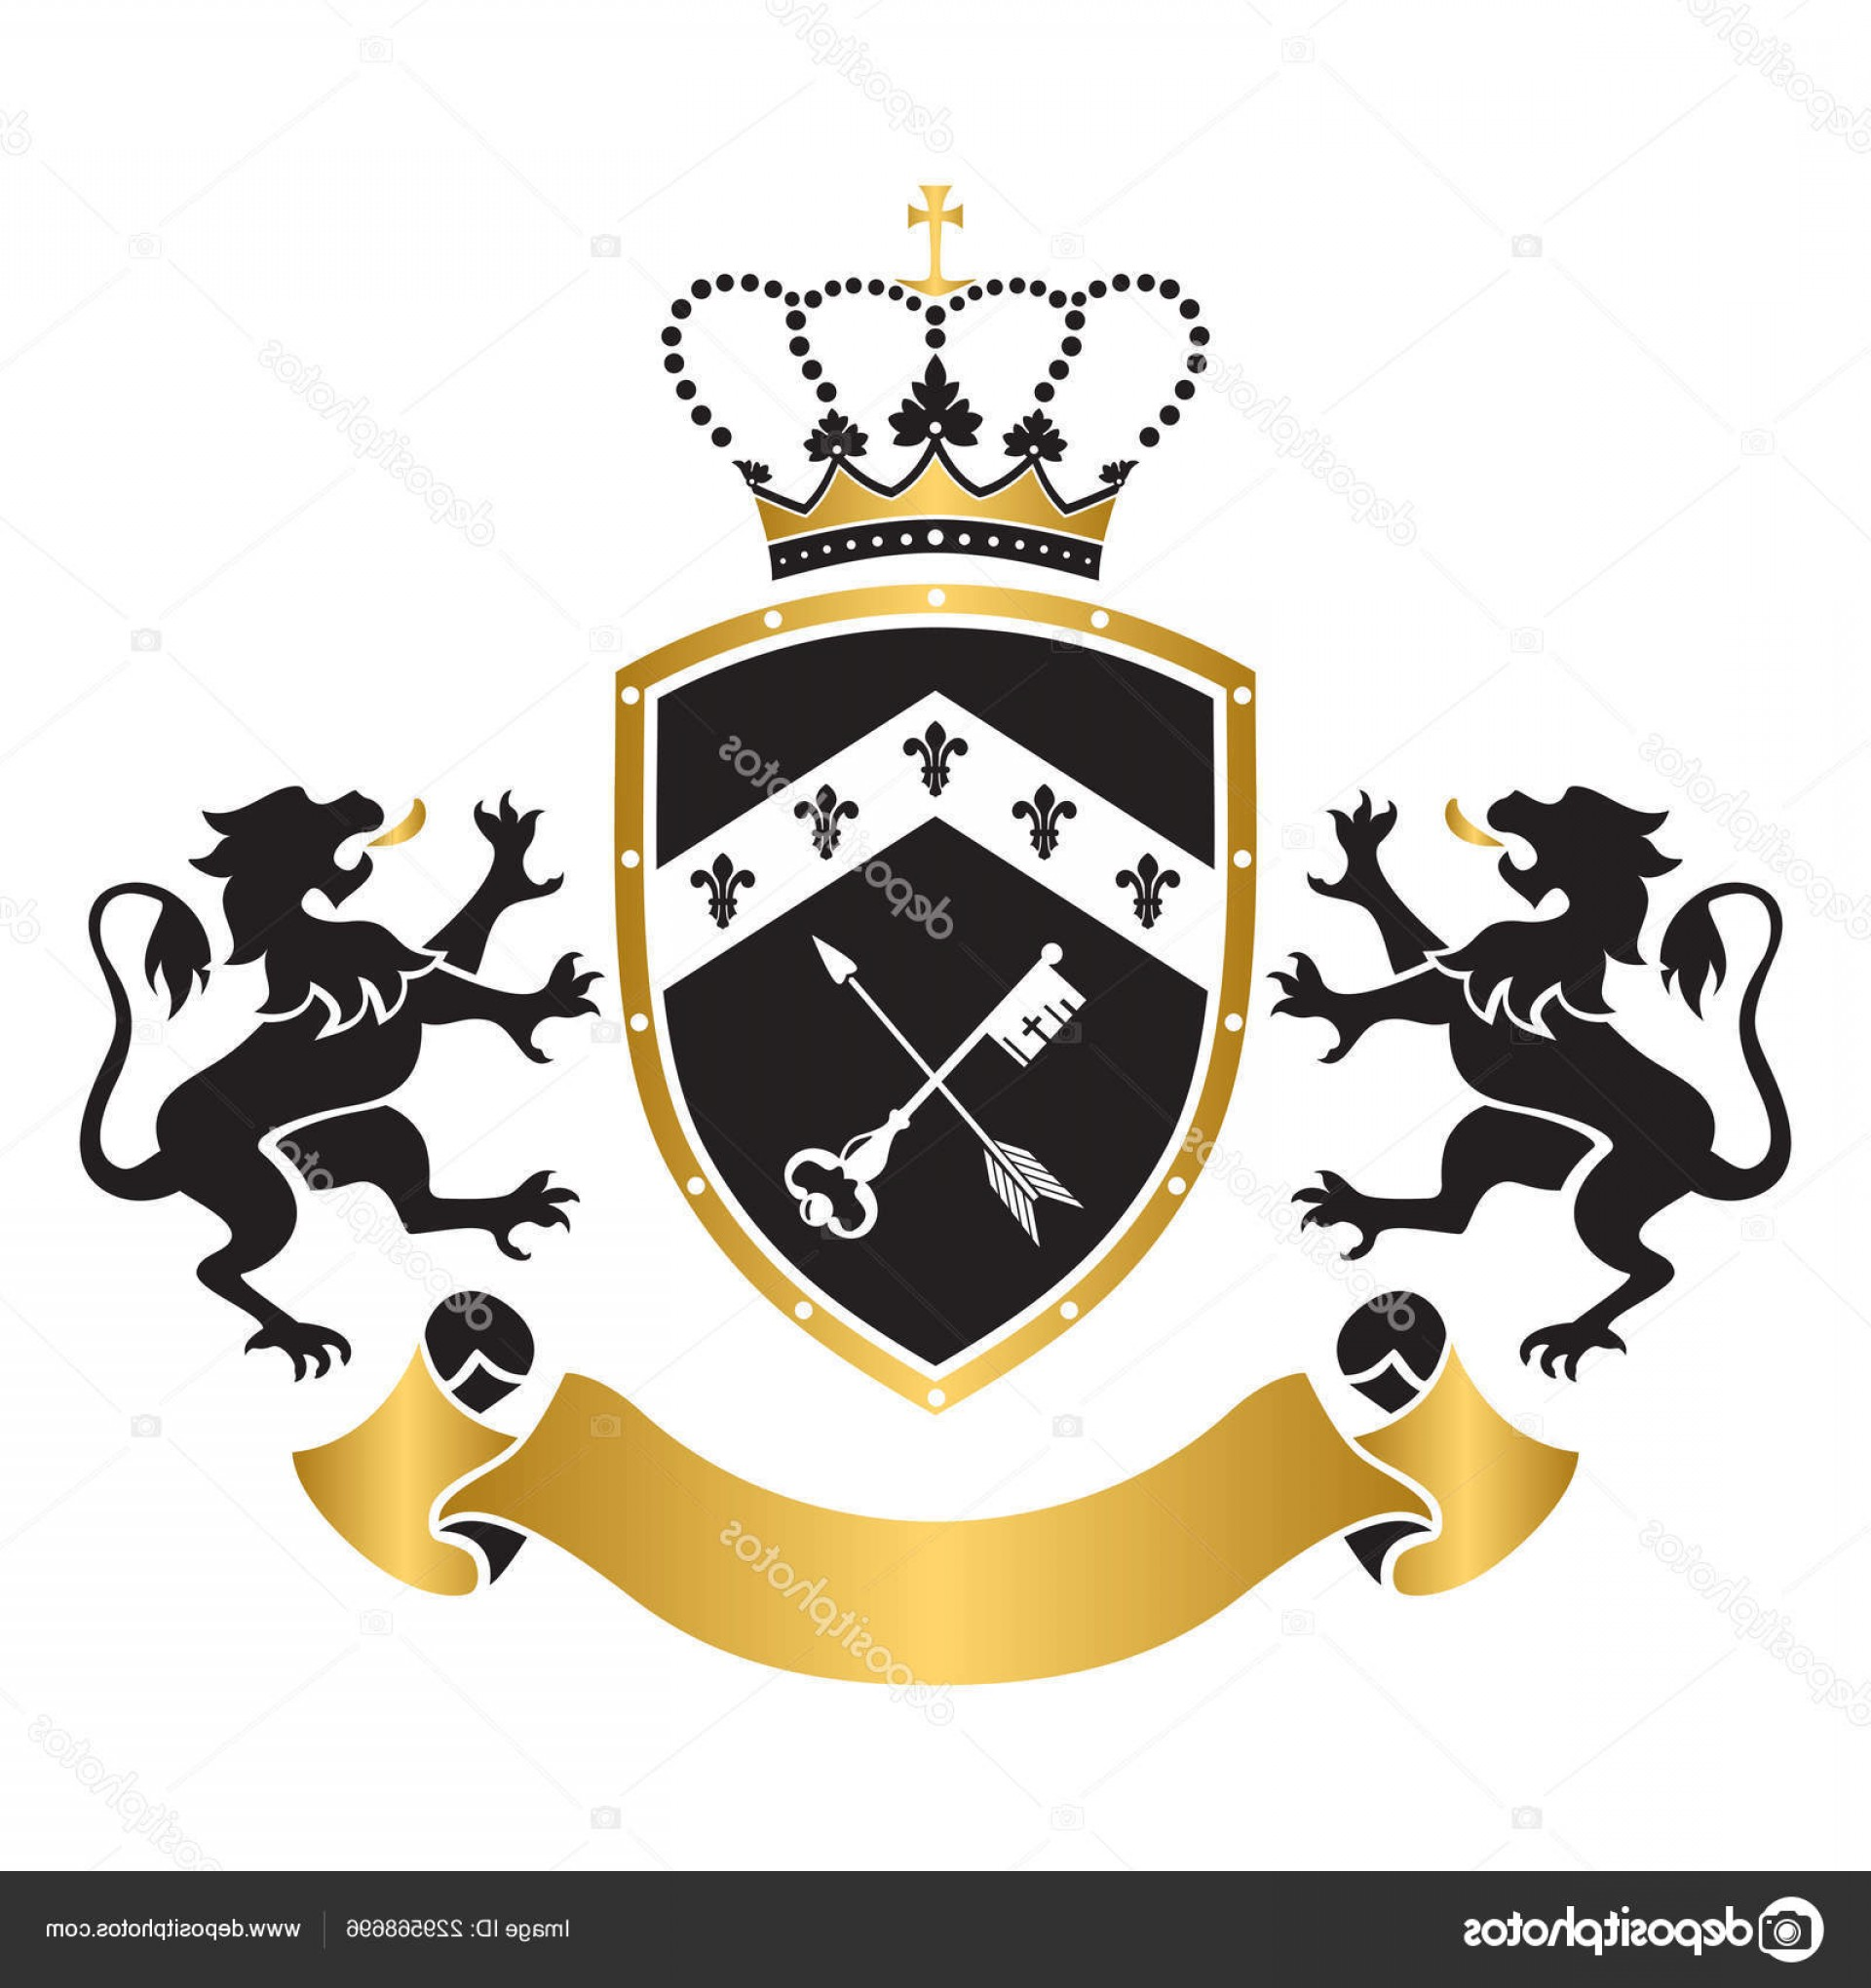 Standing Lions Crest Vector: Stock Illustration Coat Arms Shield Crown Key